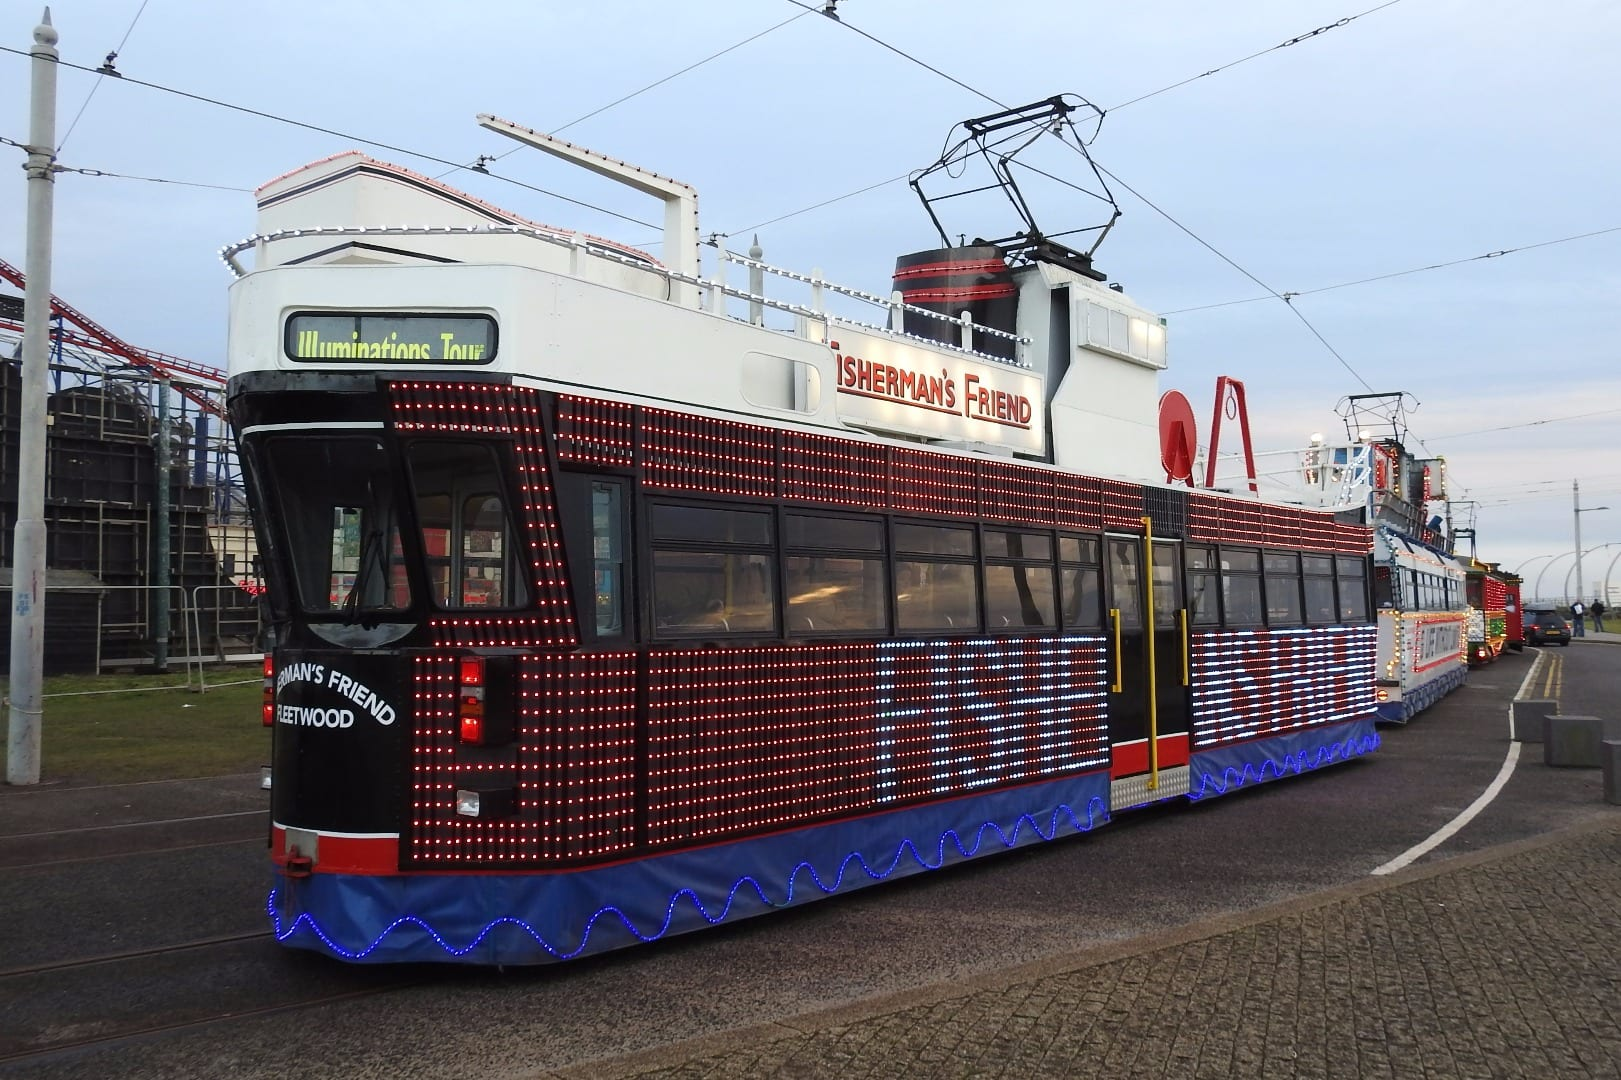 Trams depart to begin the parade